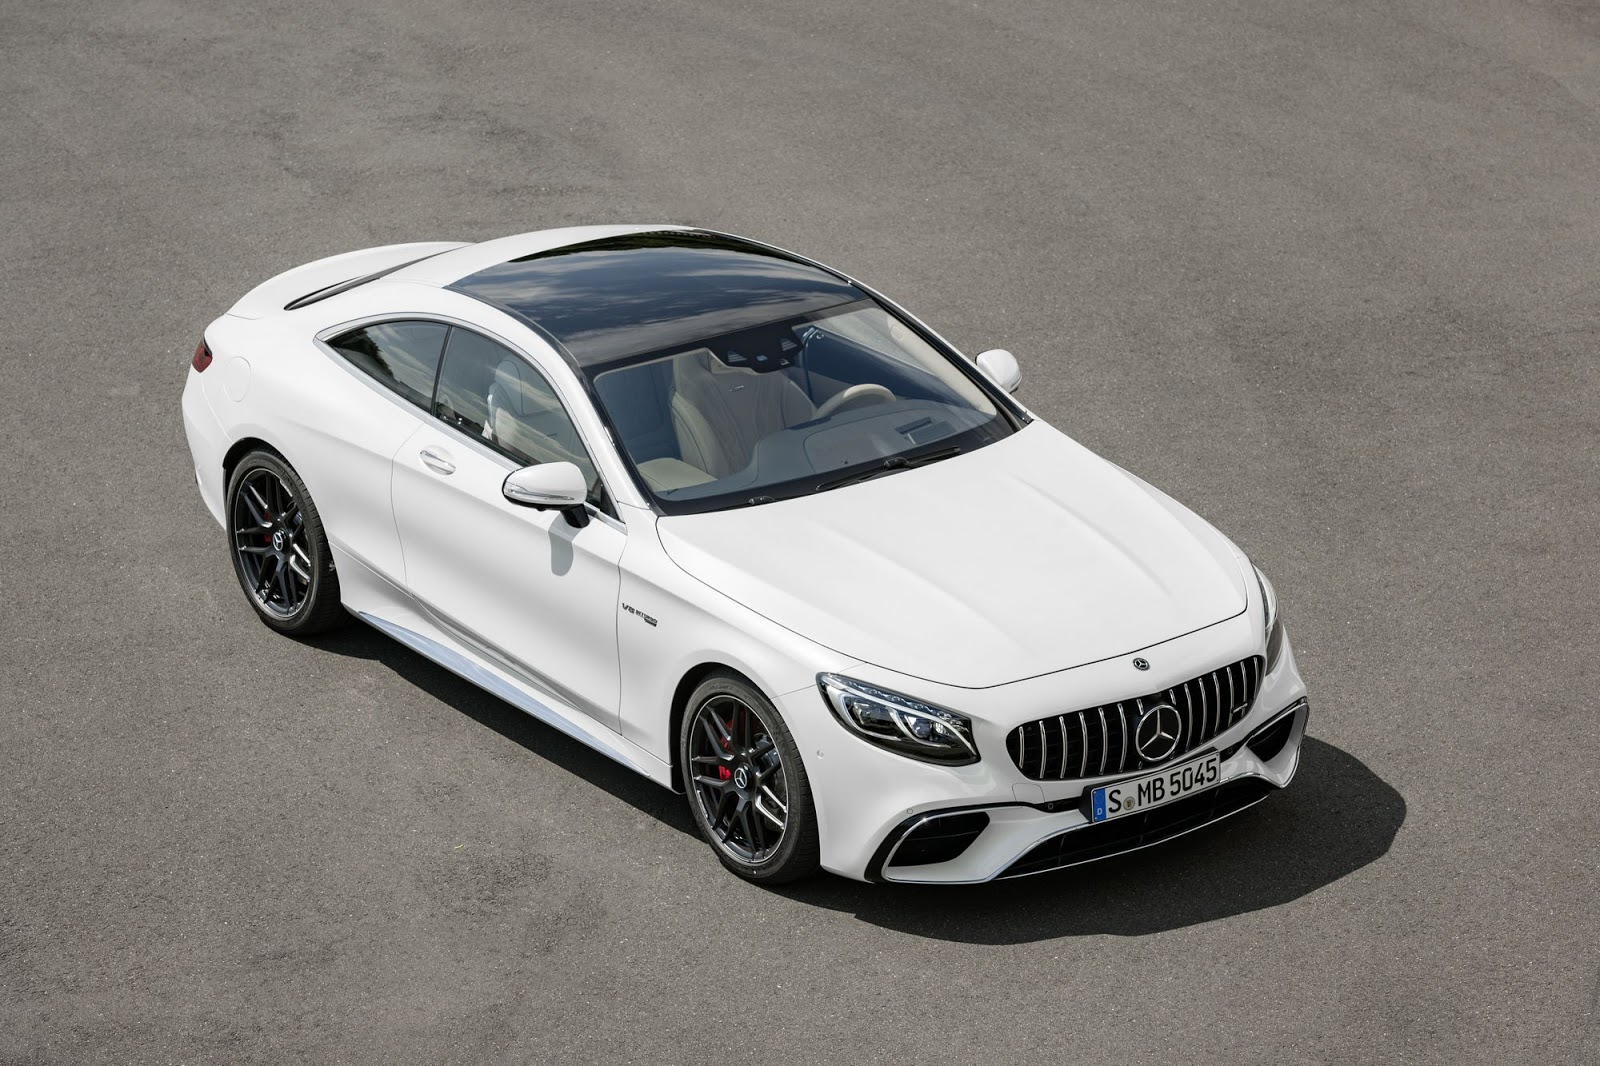 2018 mercedes amg s63 s65 coupe cabrio get refreshed. Black Bedroom Furniture Sets. Home Design Ideas